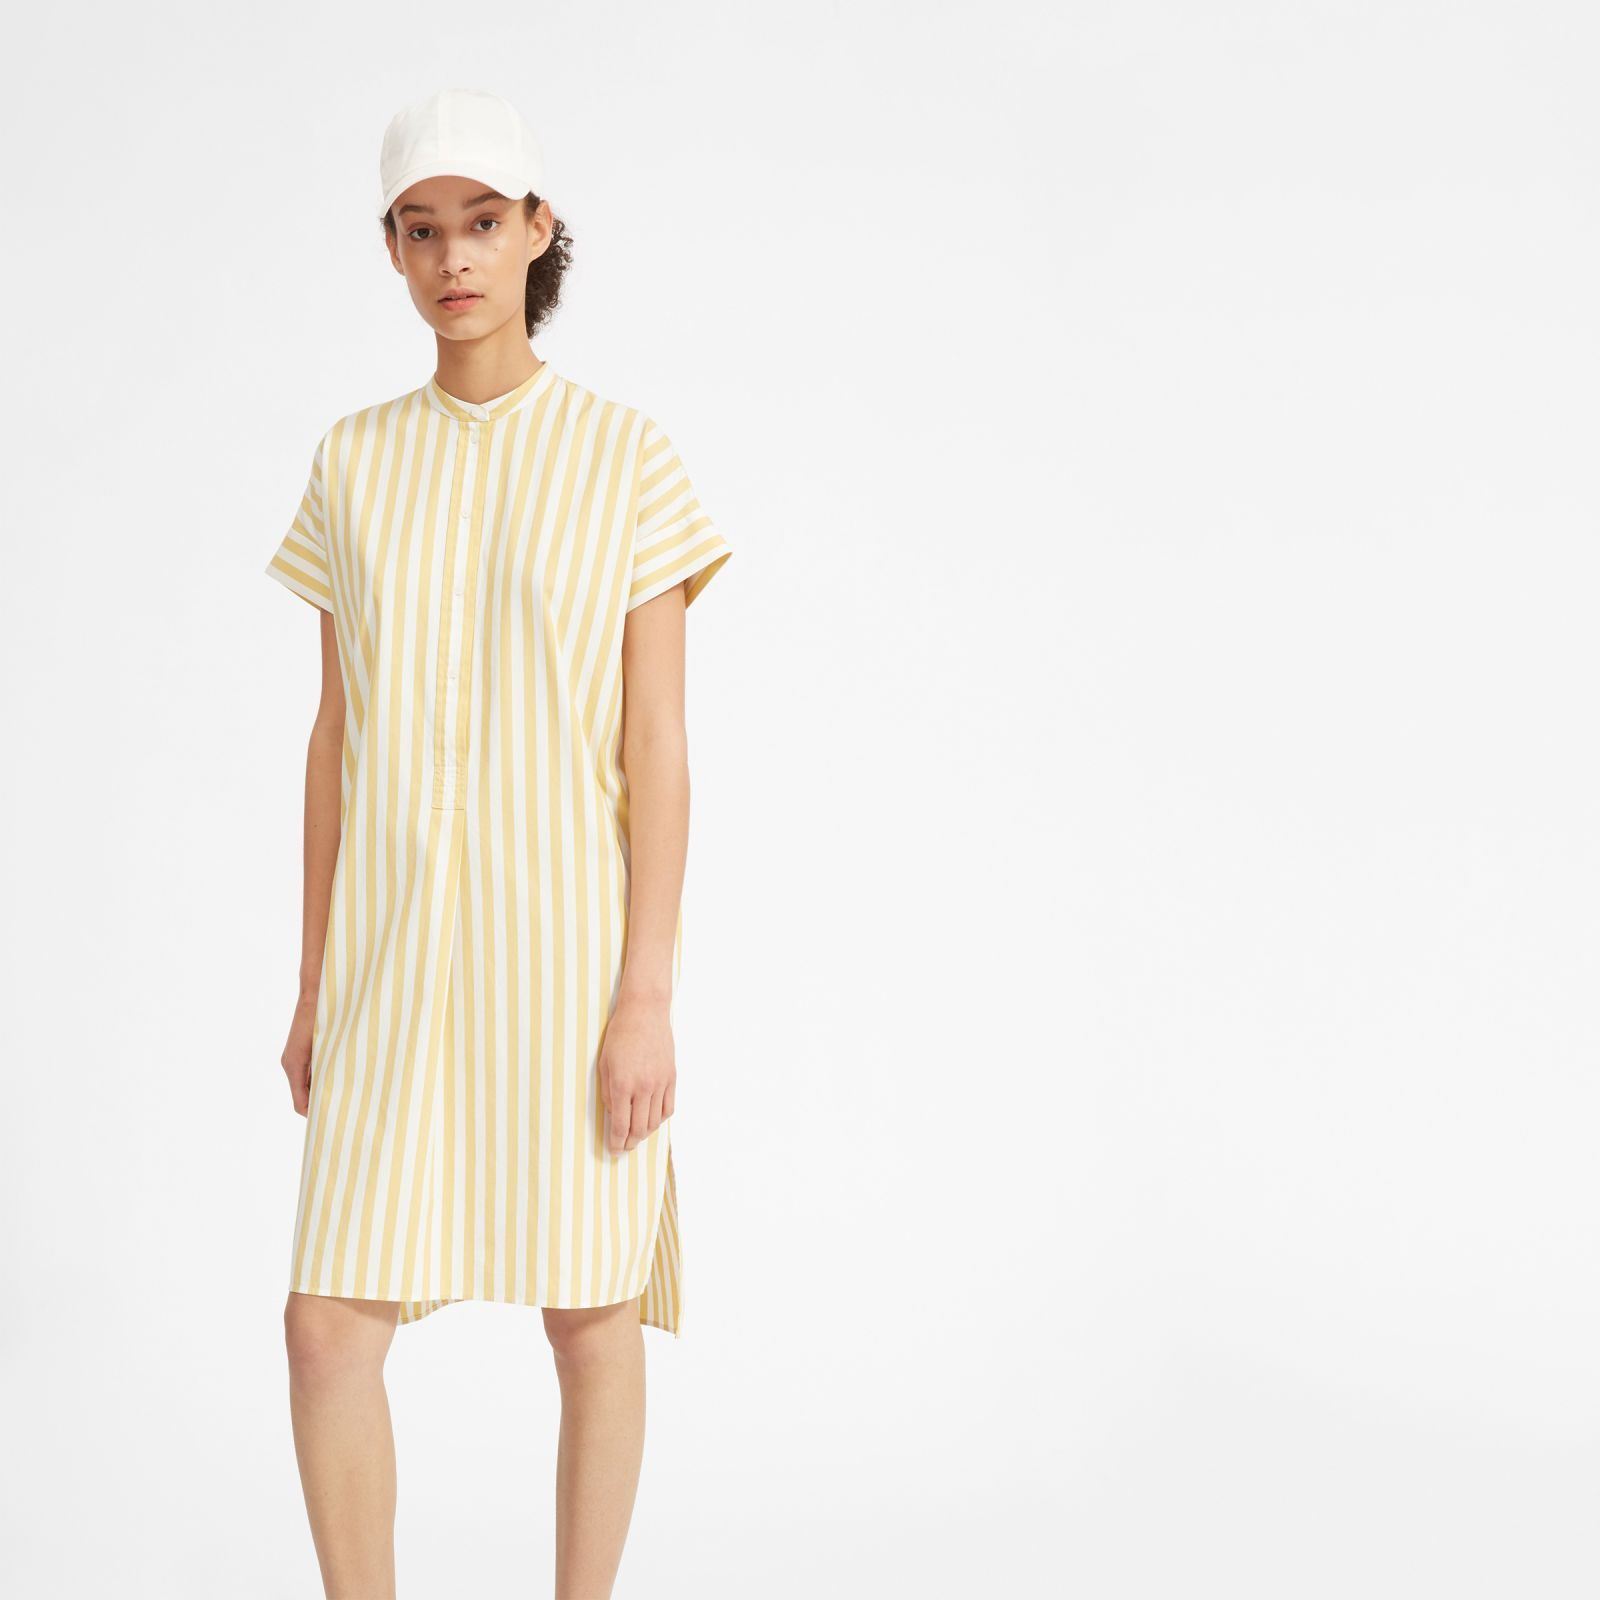 7639255949c4 Women's Cotton Popover Midi Shirtdress by Everlane in Yellow / White Stripe